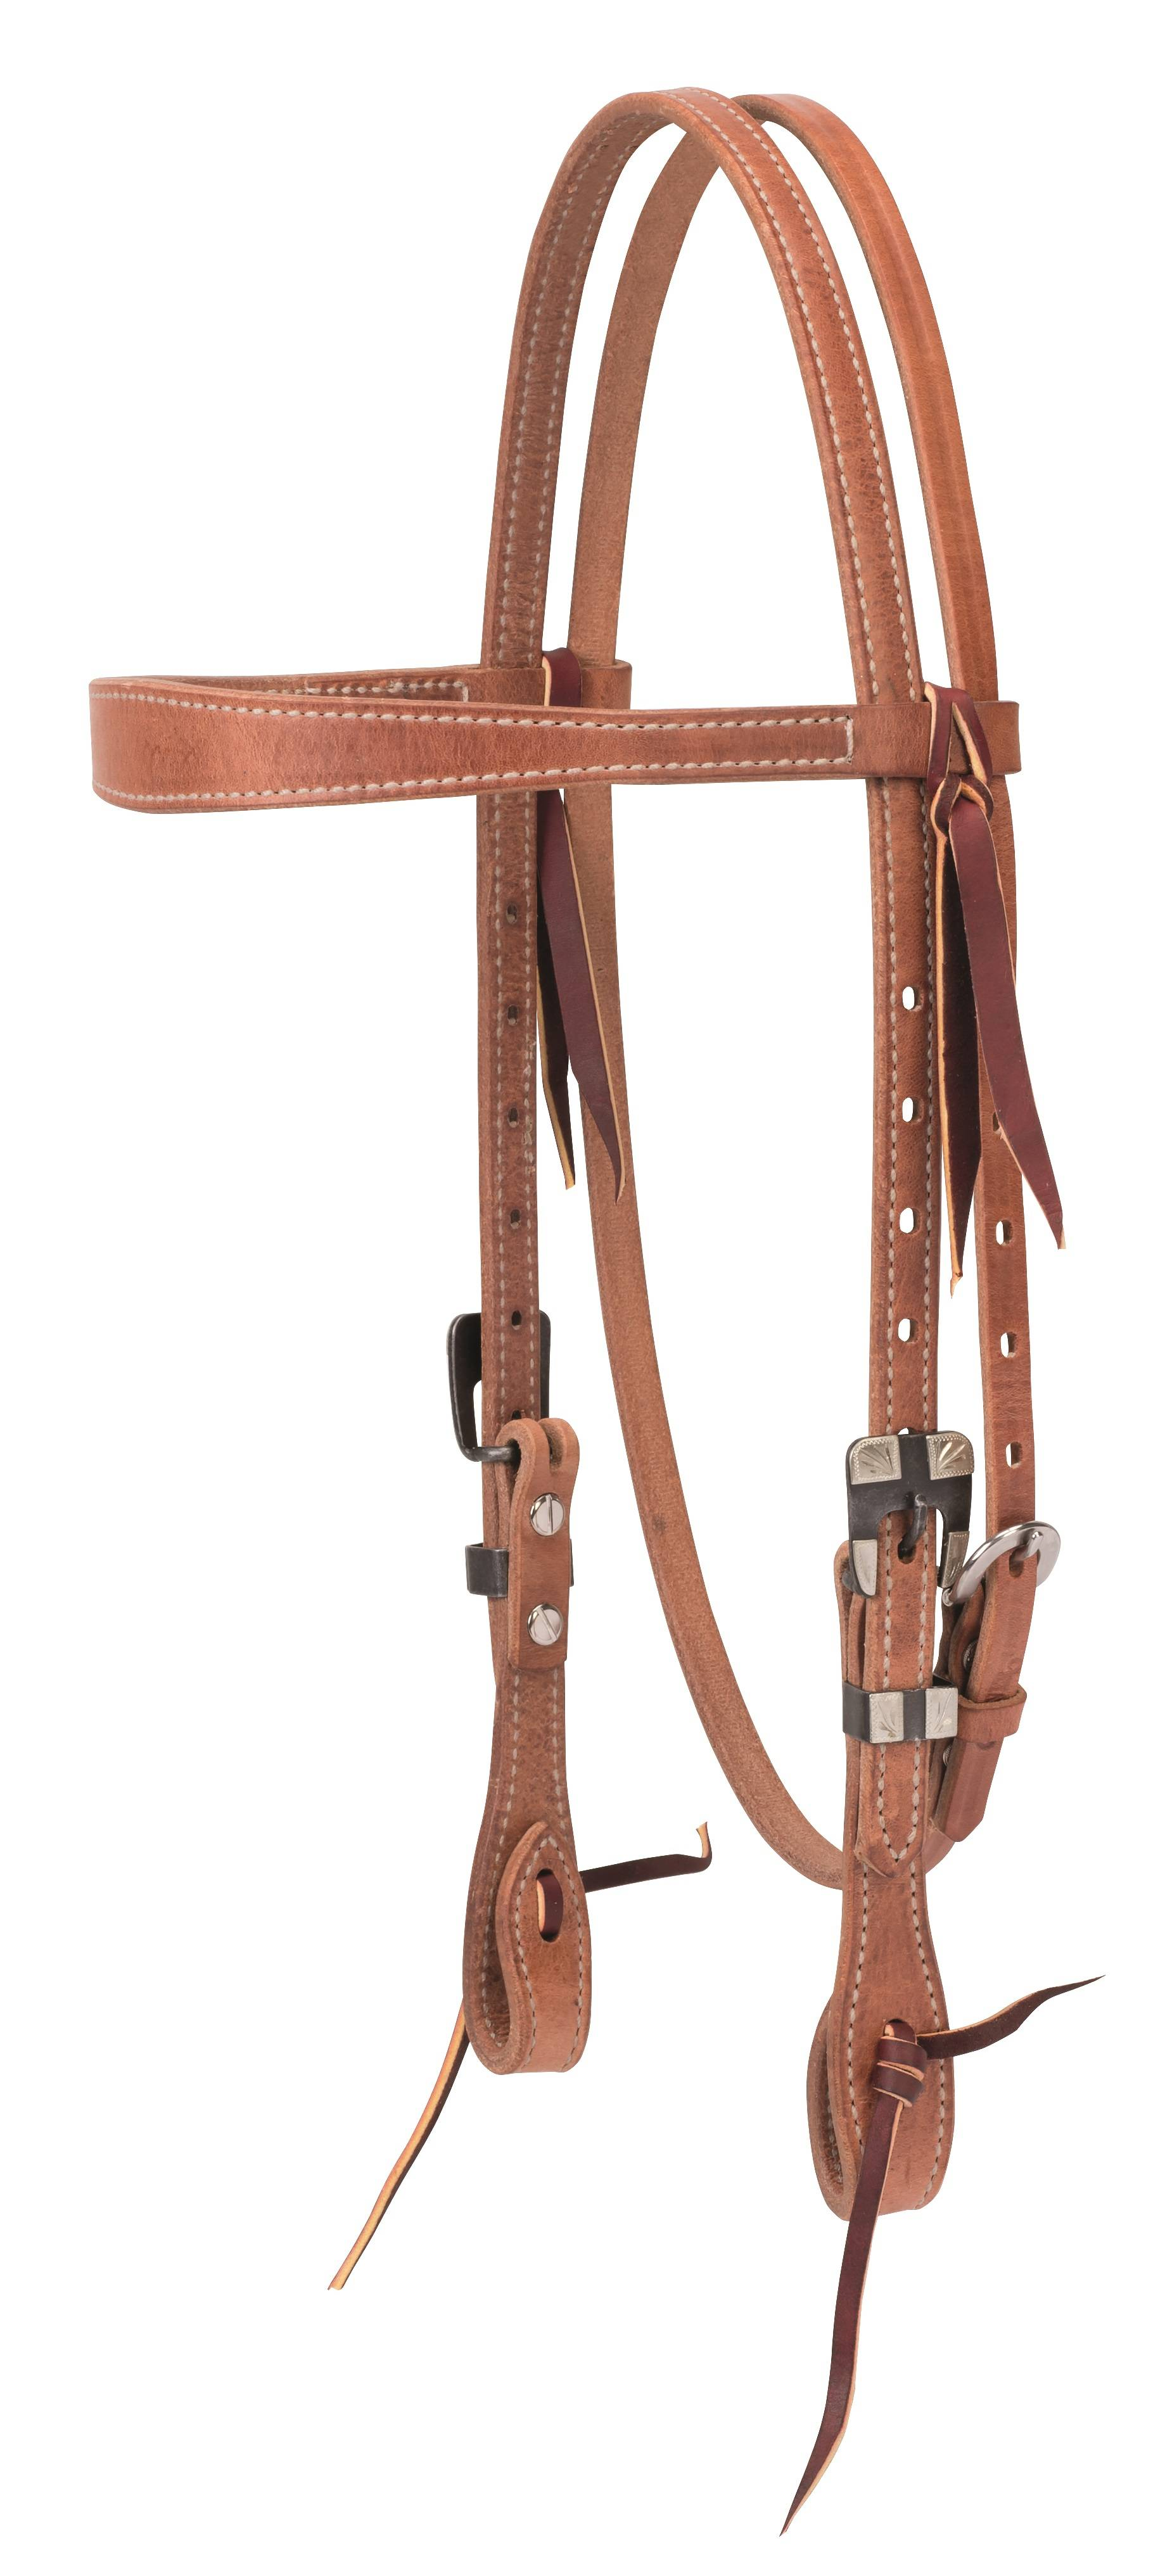 Weaver Premium Harness Leather Slim Cowboy Browband Headstall - Buffed Black Hardware